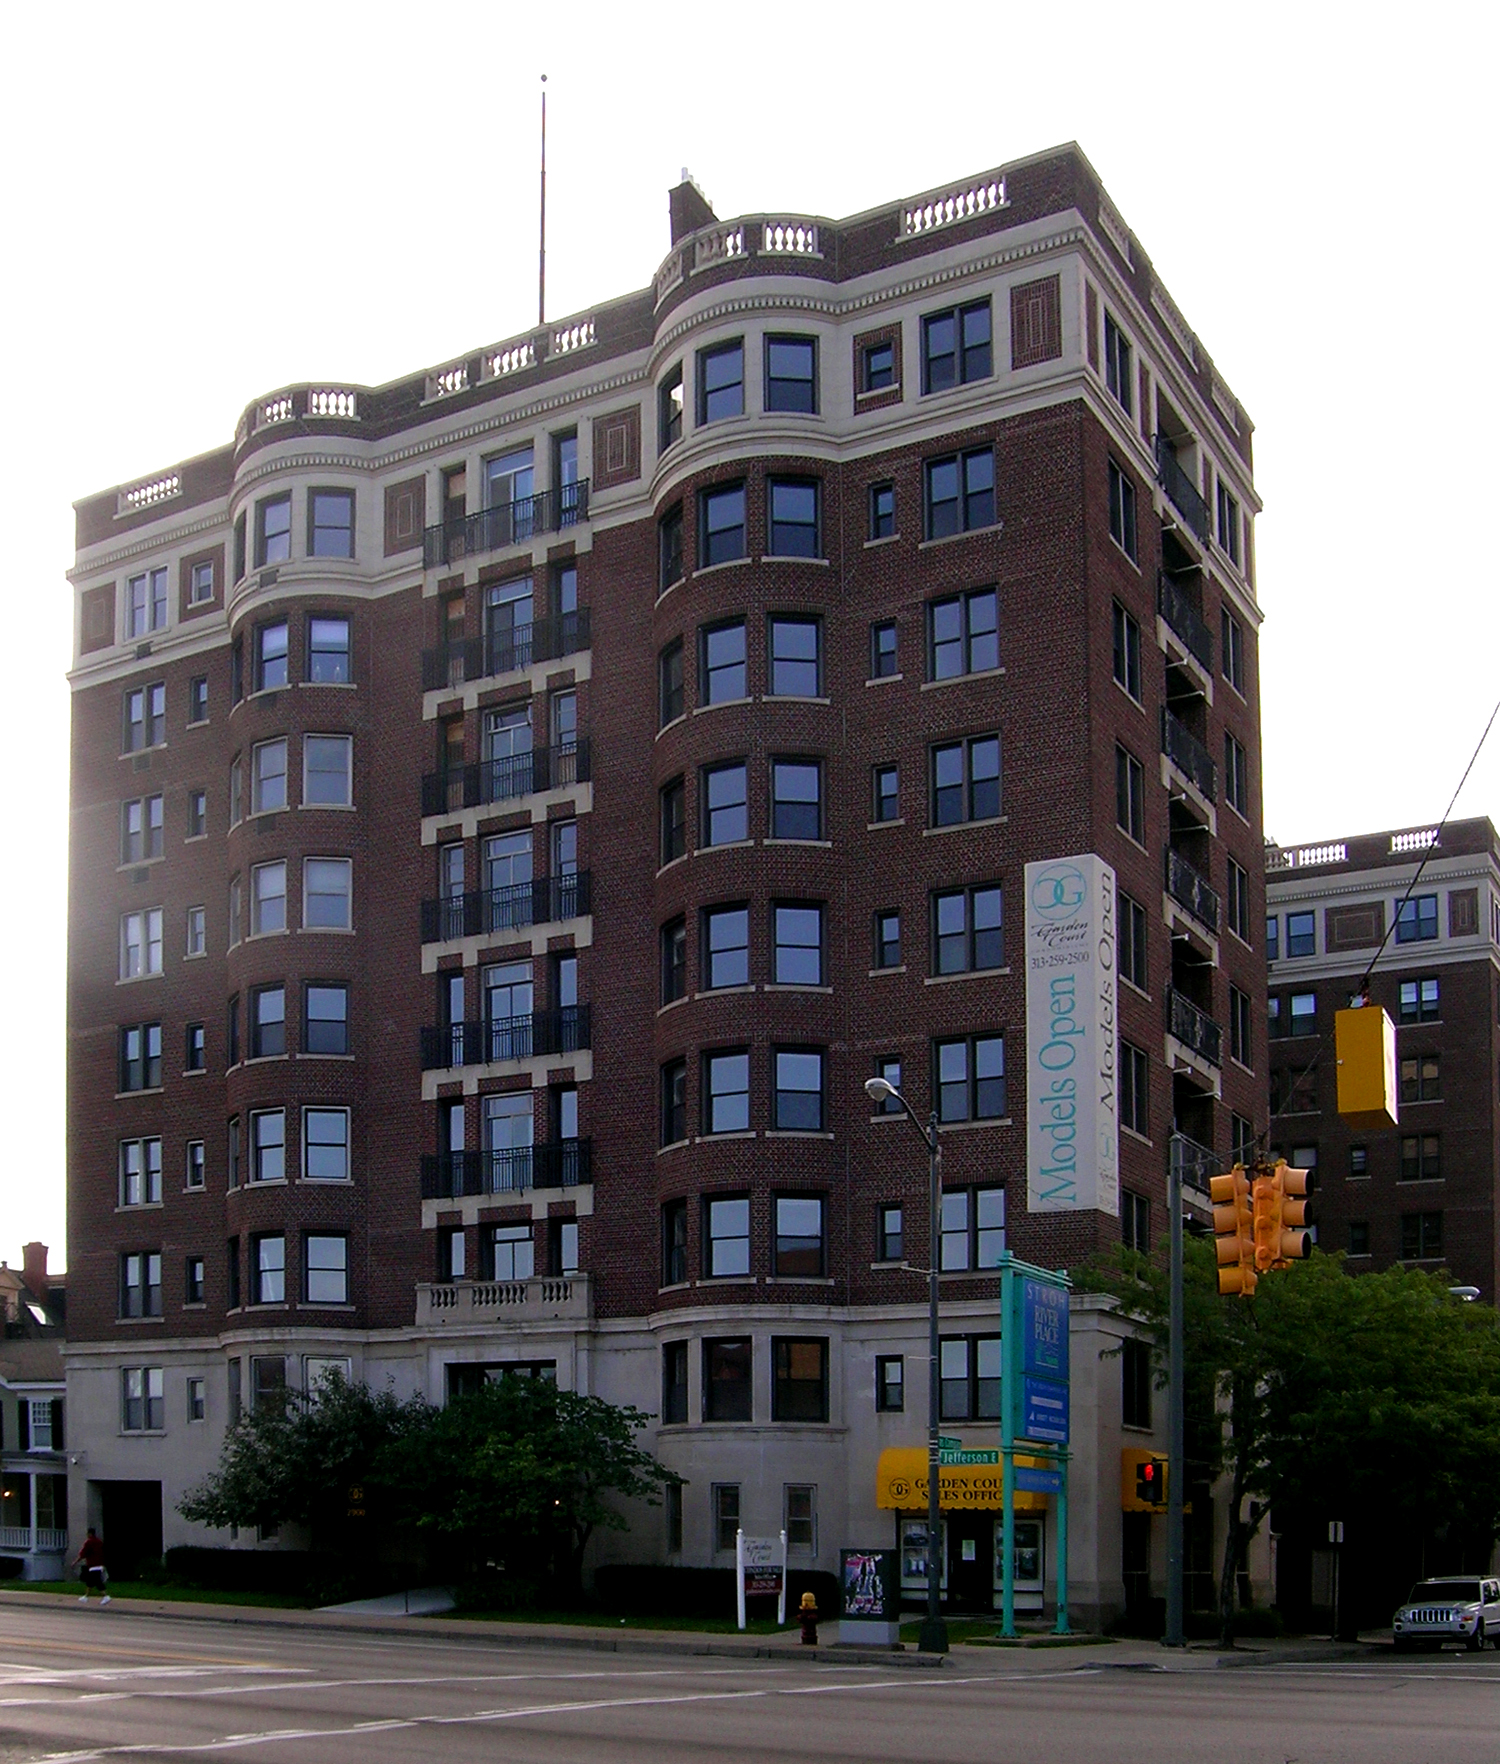 The Jefferson Apartments: Garden Court Apartments (Detroit, Michigan)